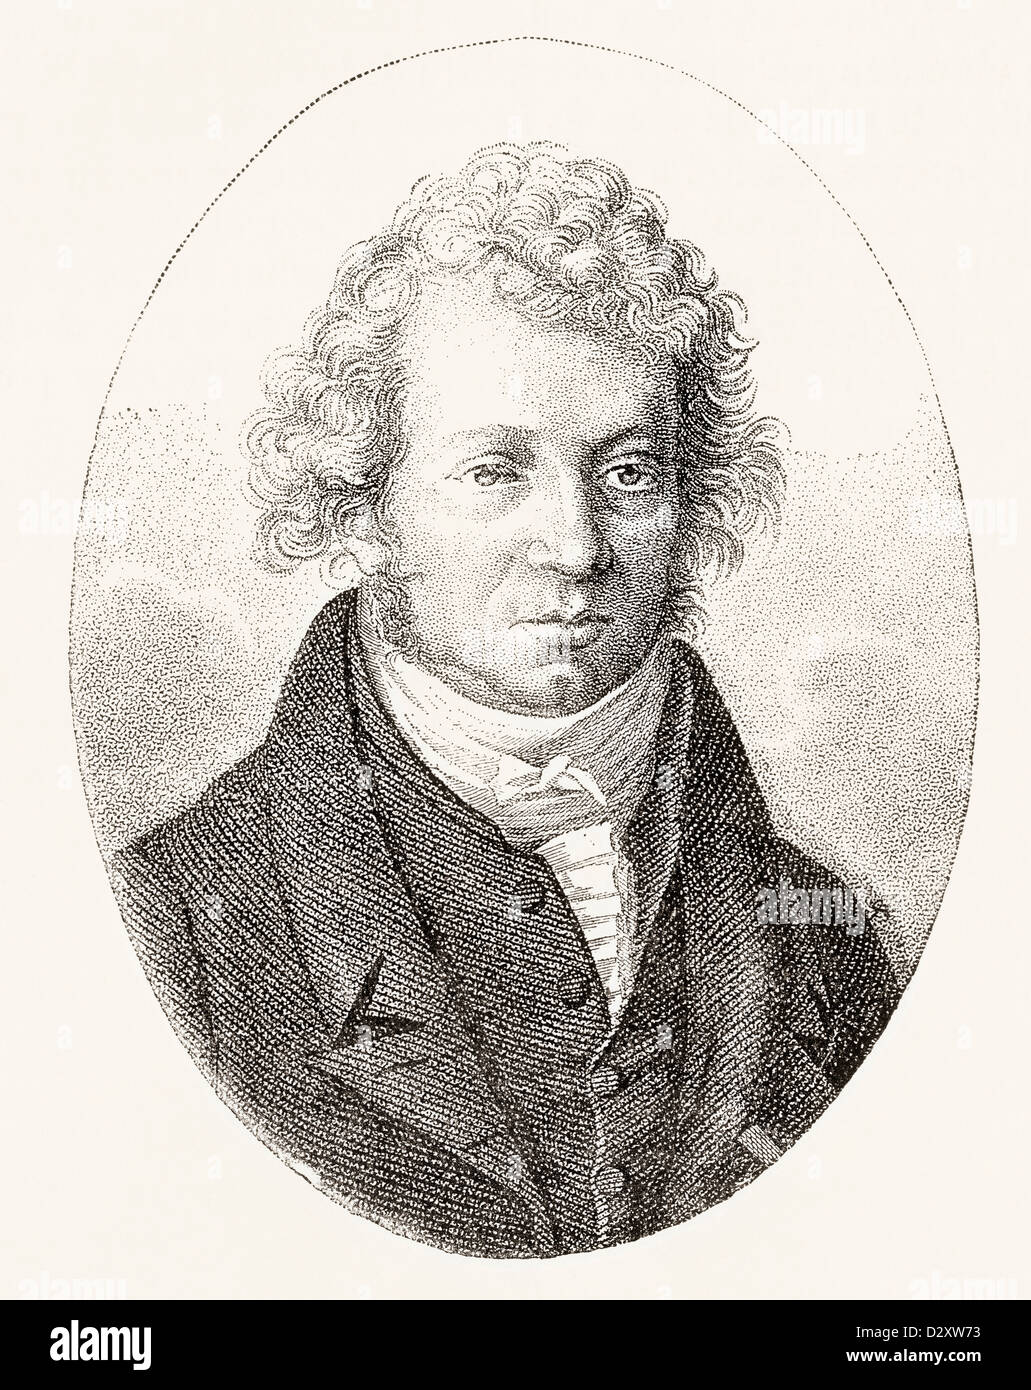 André-Marie Ampère, 1775 – 1836. French physicist and mathematician. - Stock Image